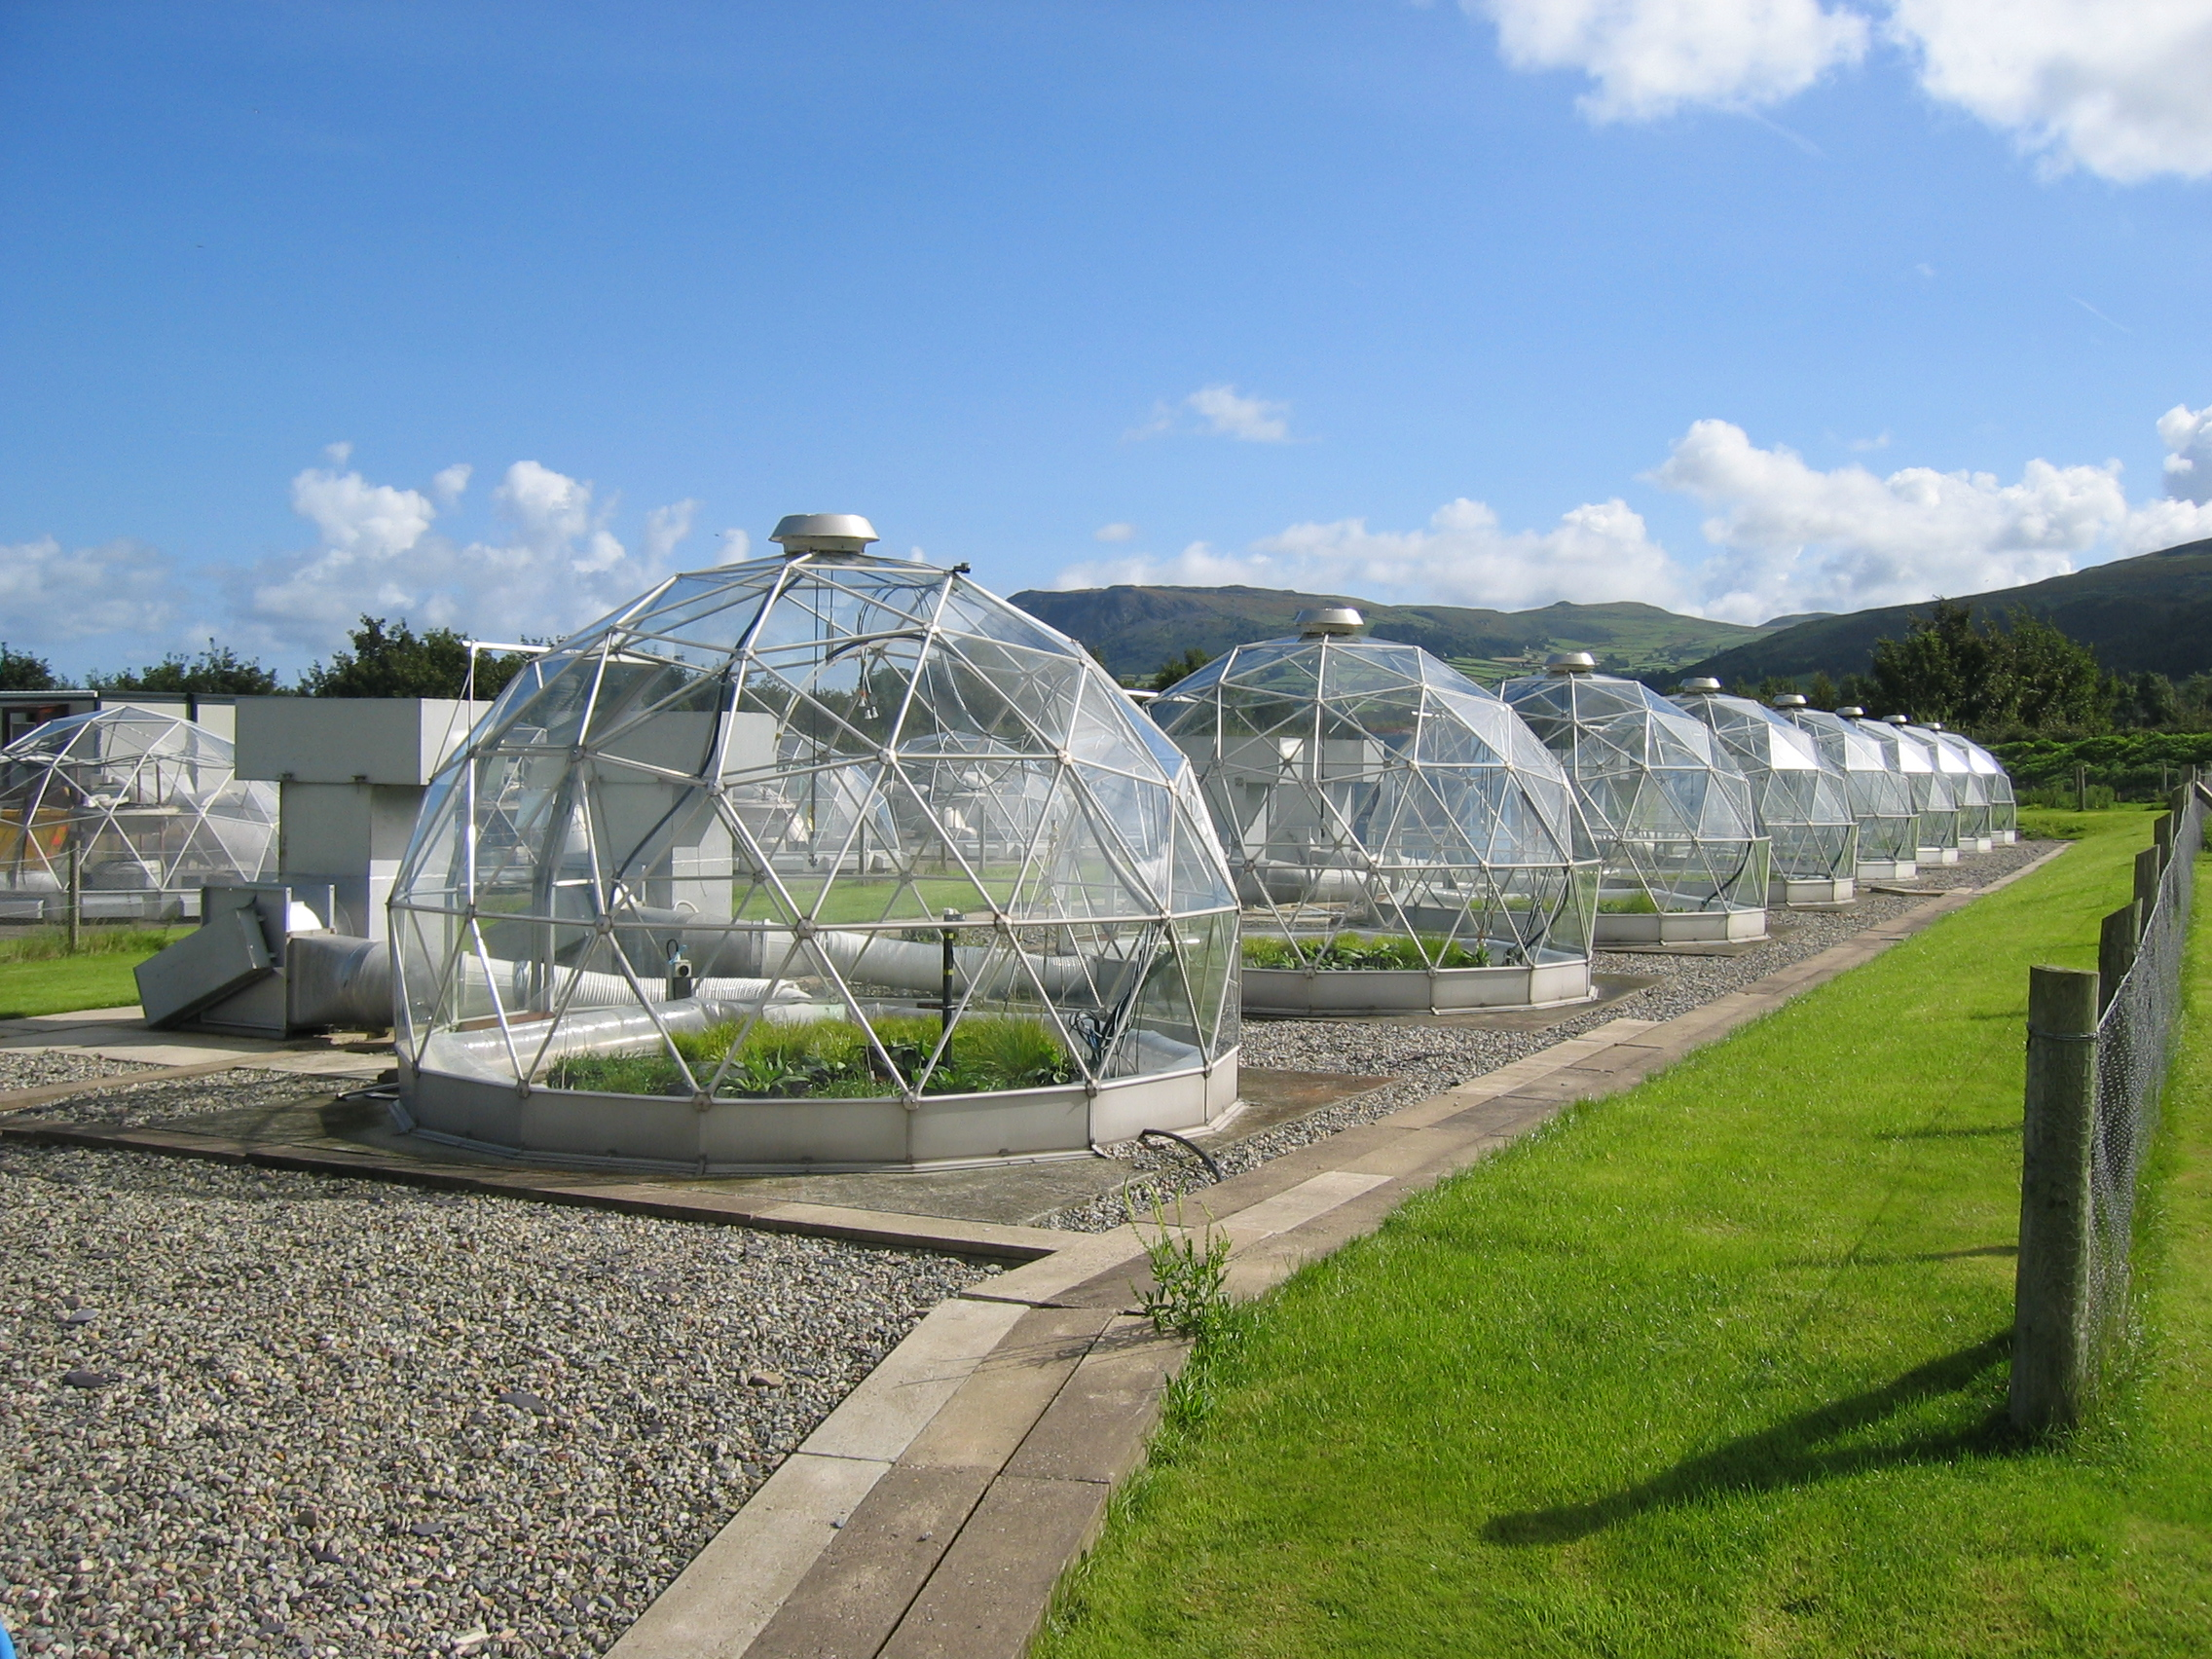 Solardome facility at CEH's Bangor site